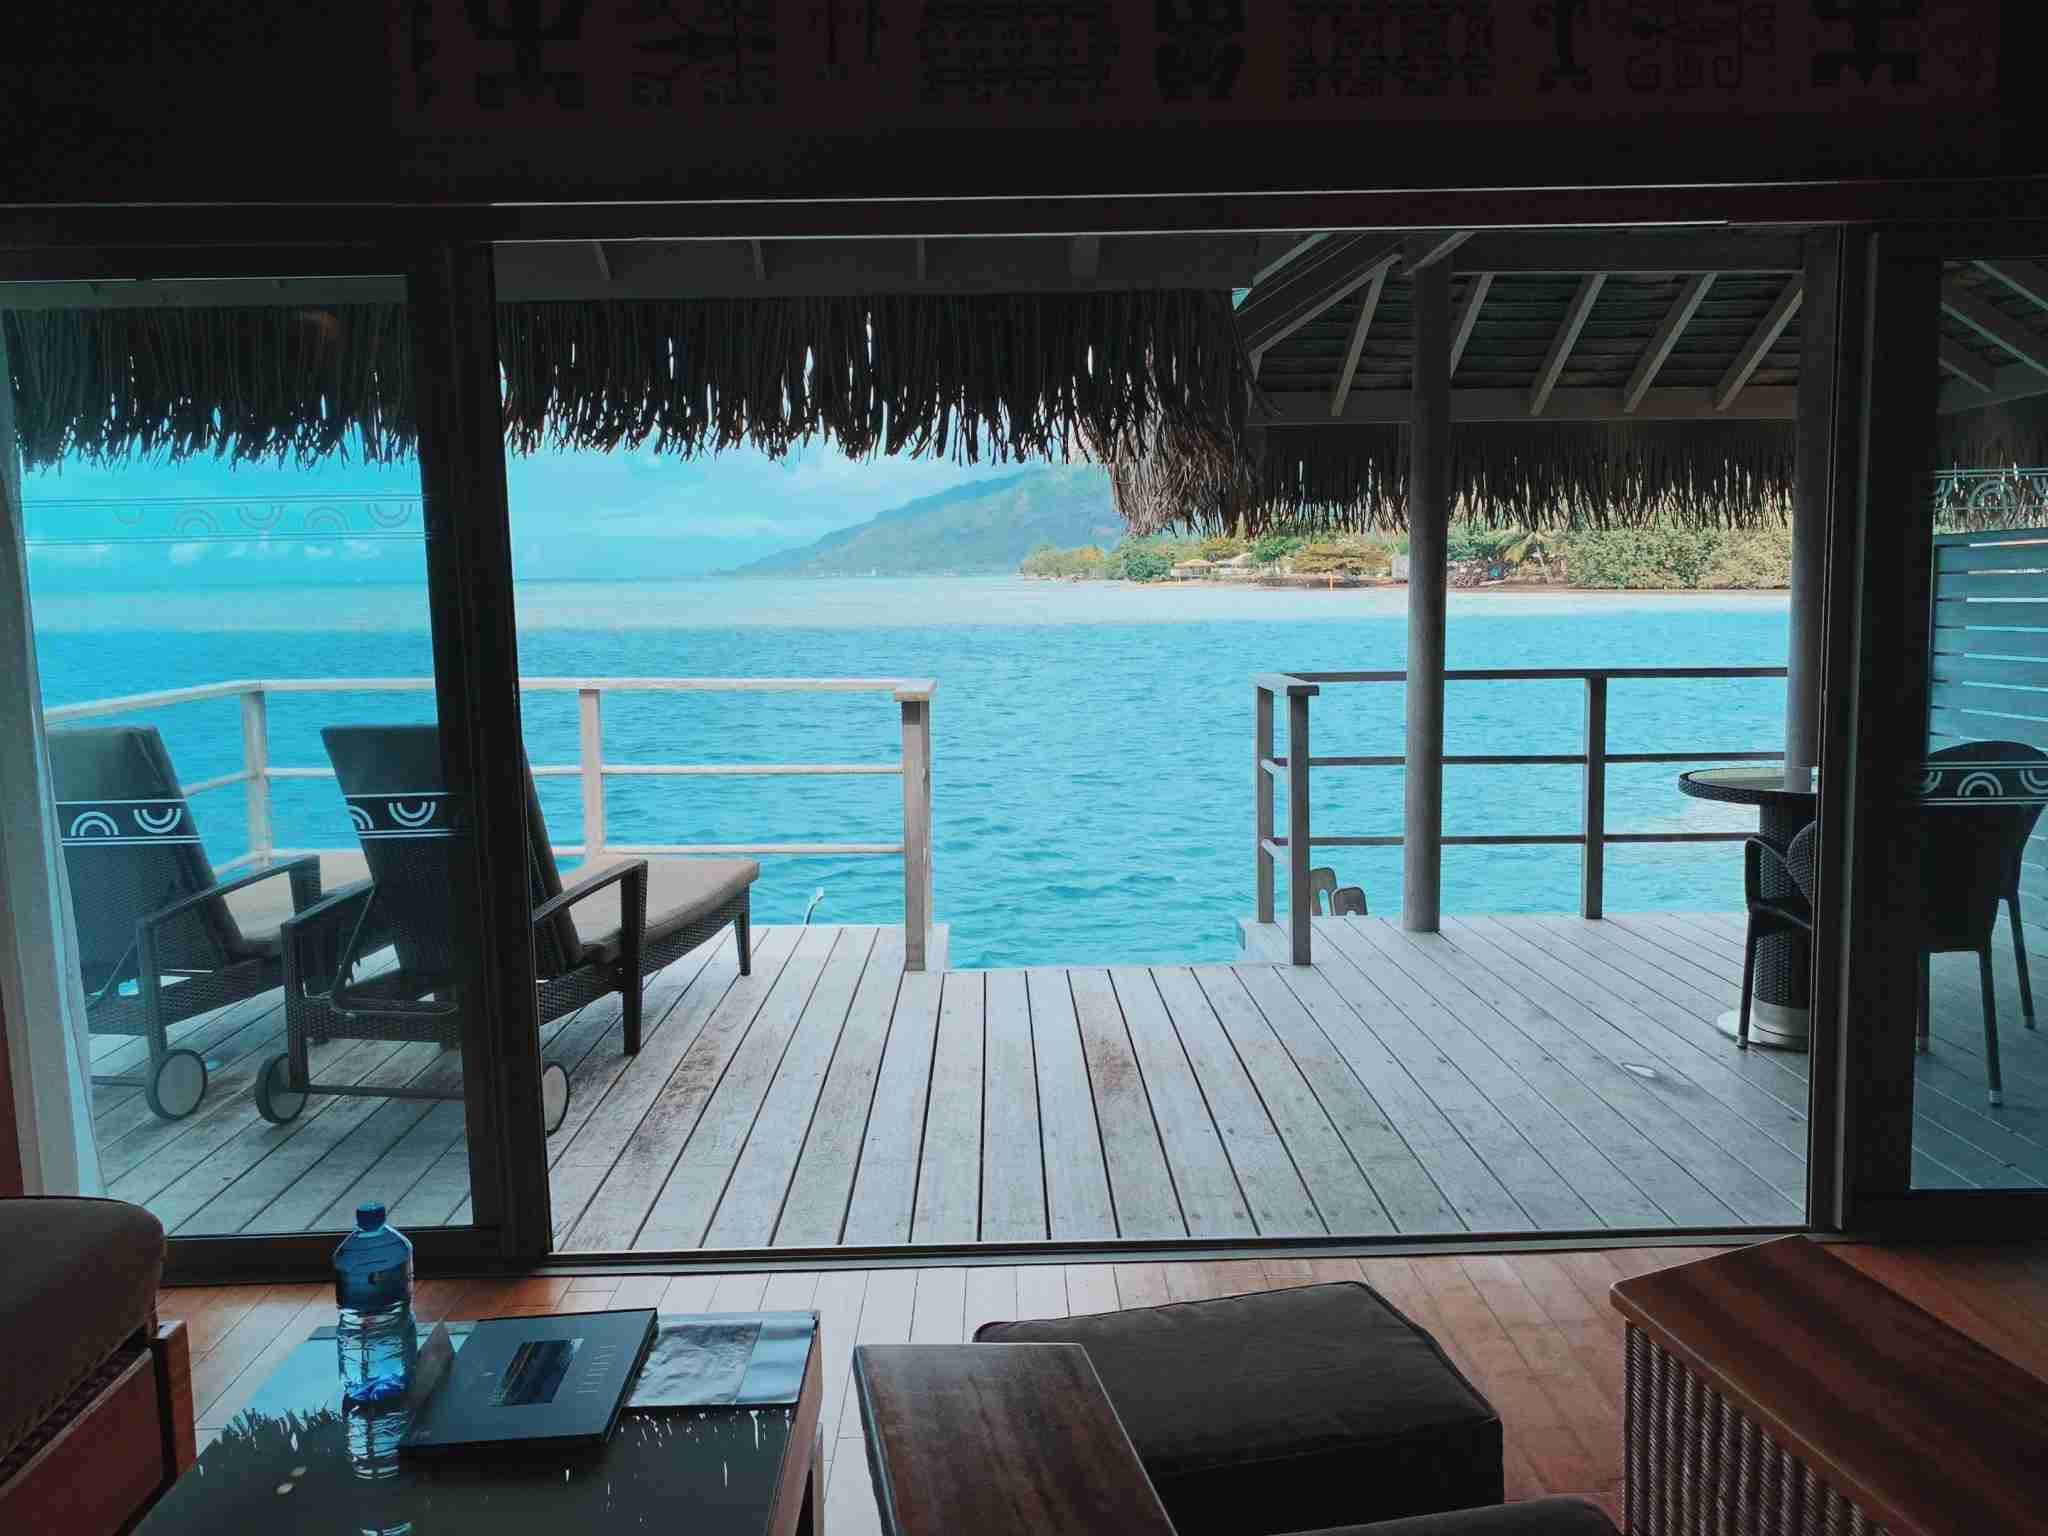 InterContinental Resort and Spa Moorea - overwater bungalow rear porch view